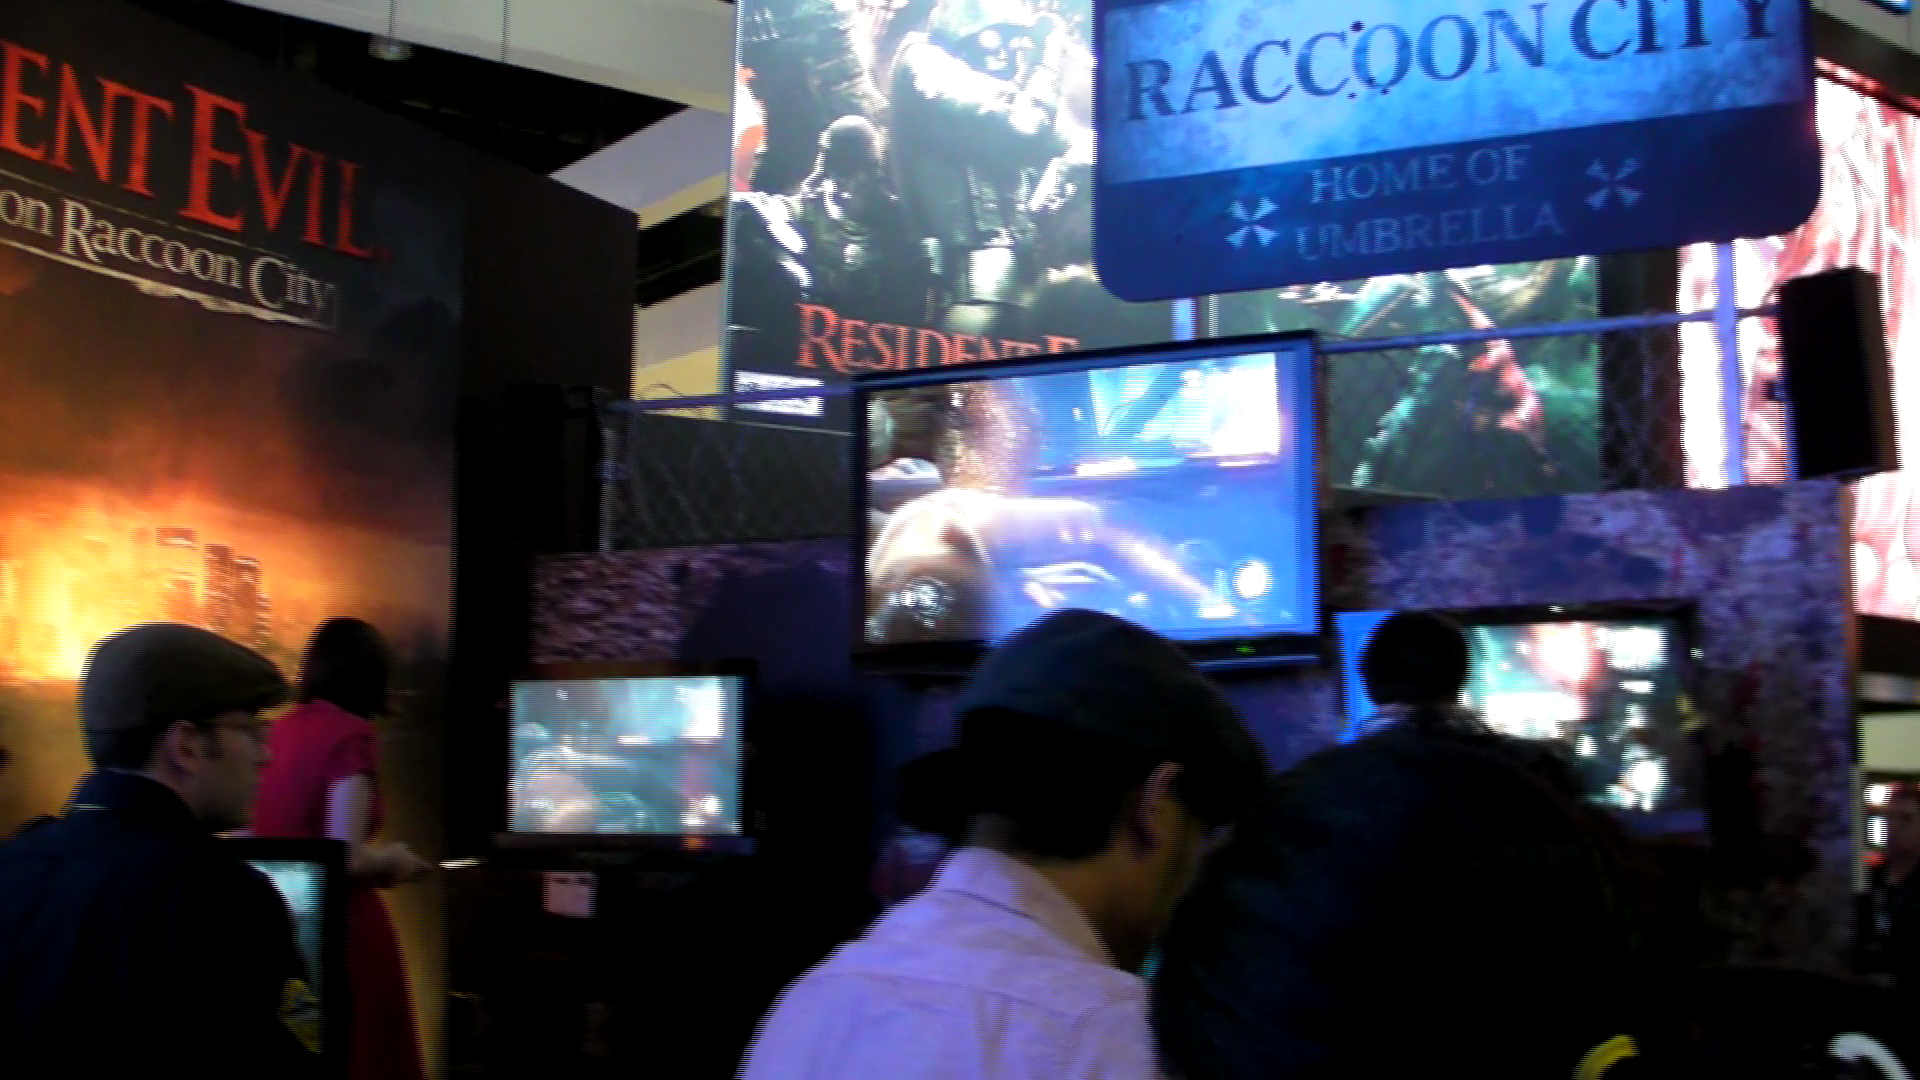 Rely on Horror E3 2011: Resident Evil: Operation Raccoon City Multiplayer Gameplay (Cam Recorded)